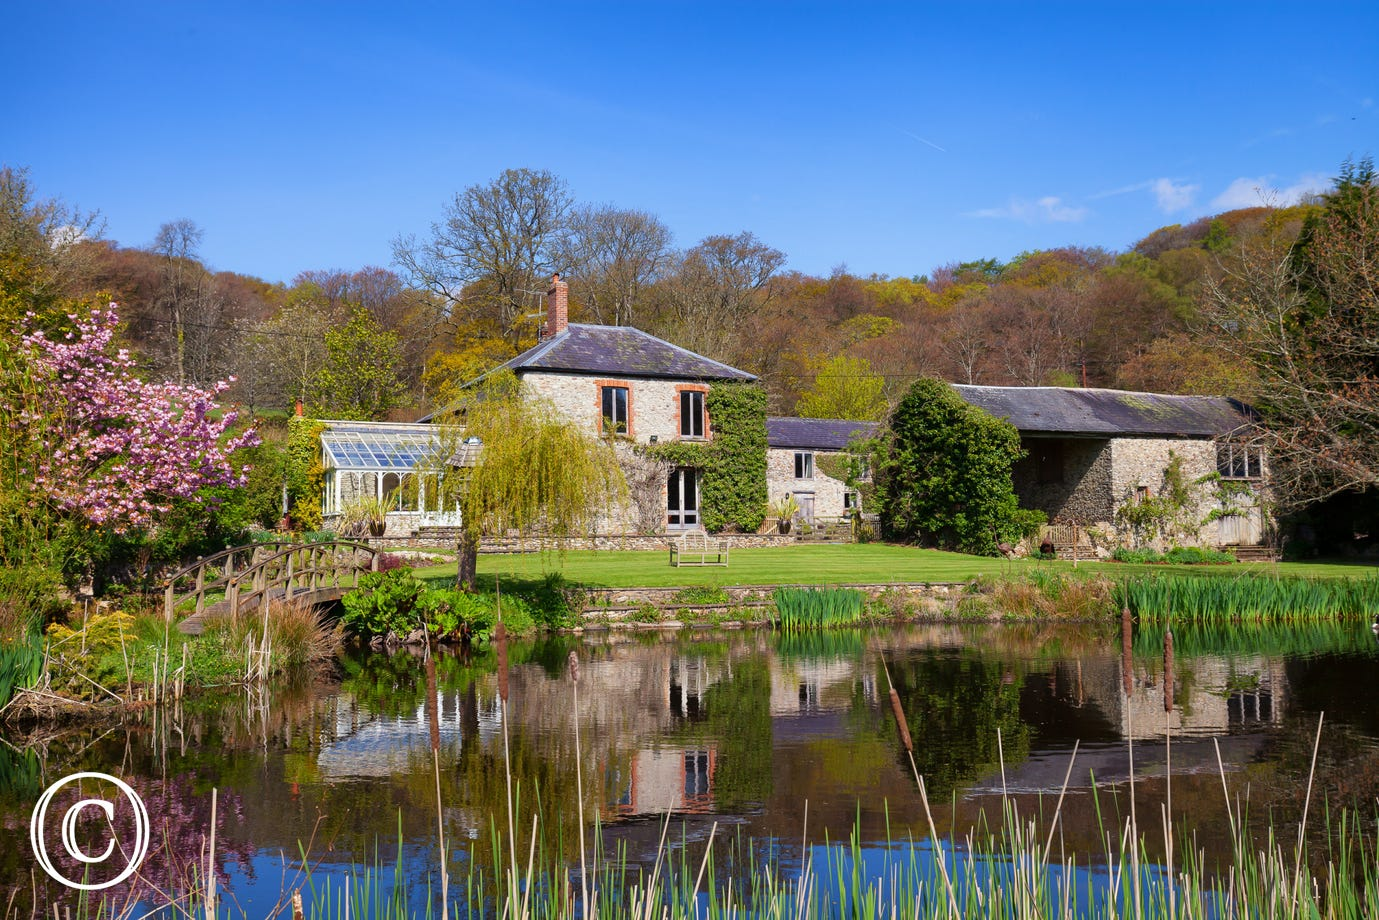 Rural lakeside self-catering holiday cottage in Honiton